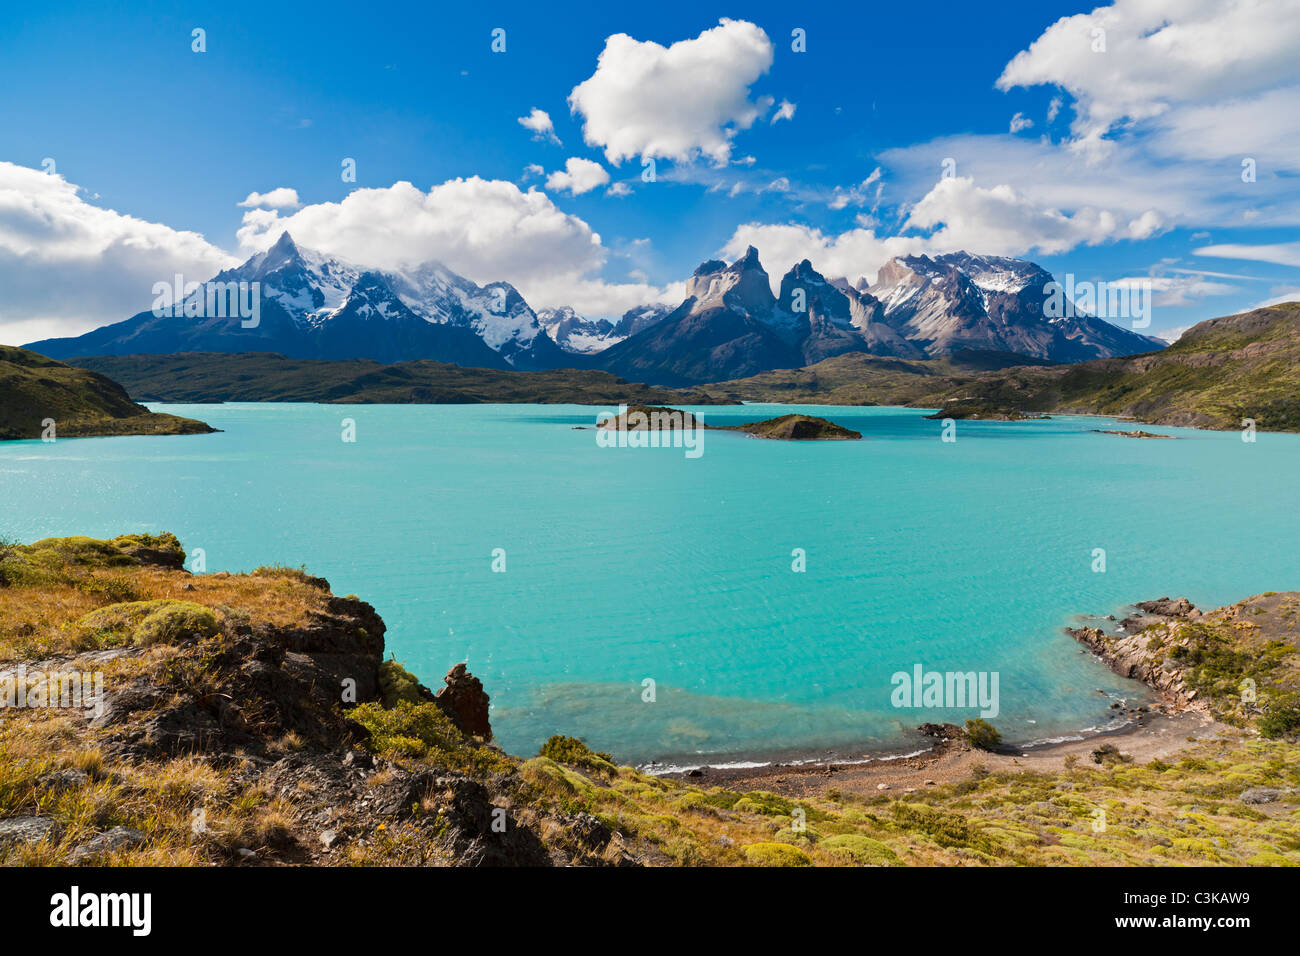 Patagonia South America >> South America Chile Patagonia View Of Cuernos Del Paine